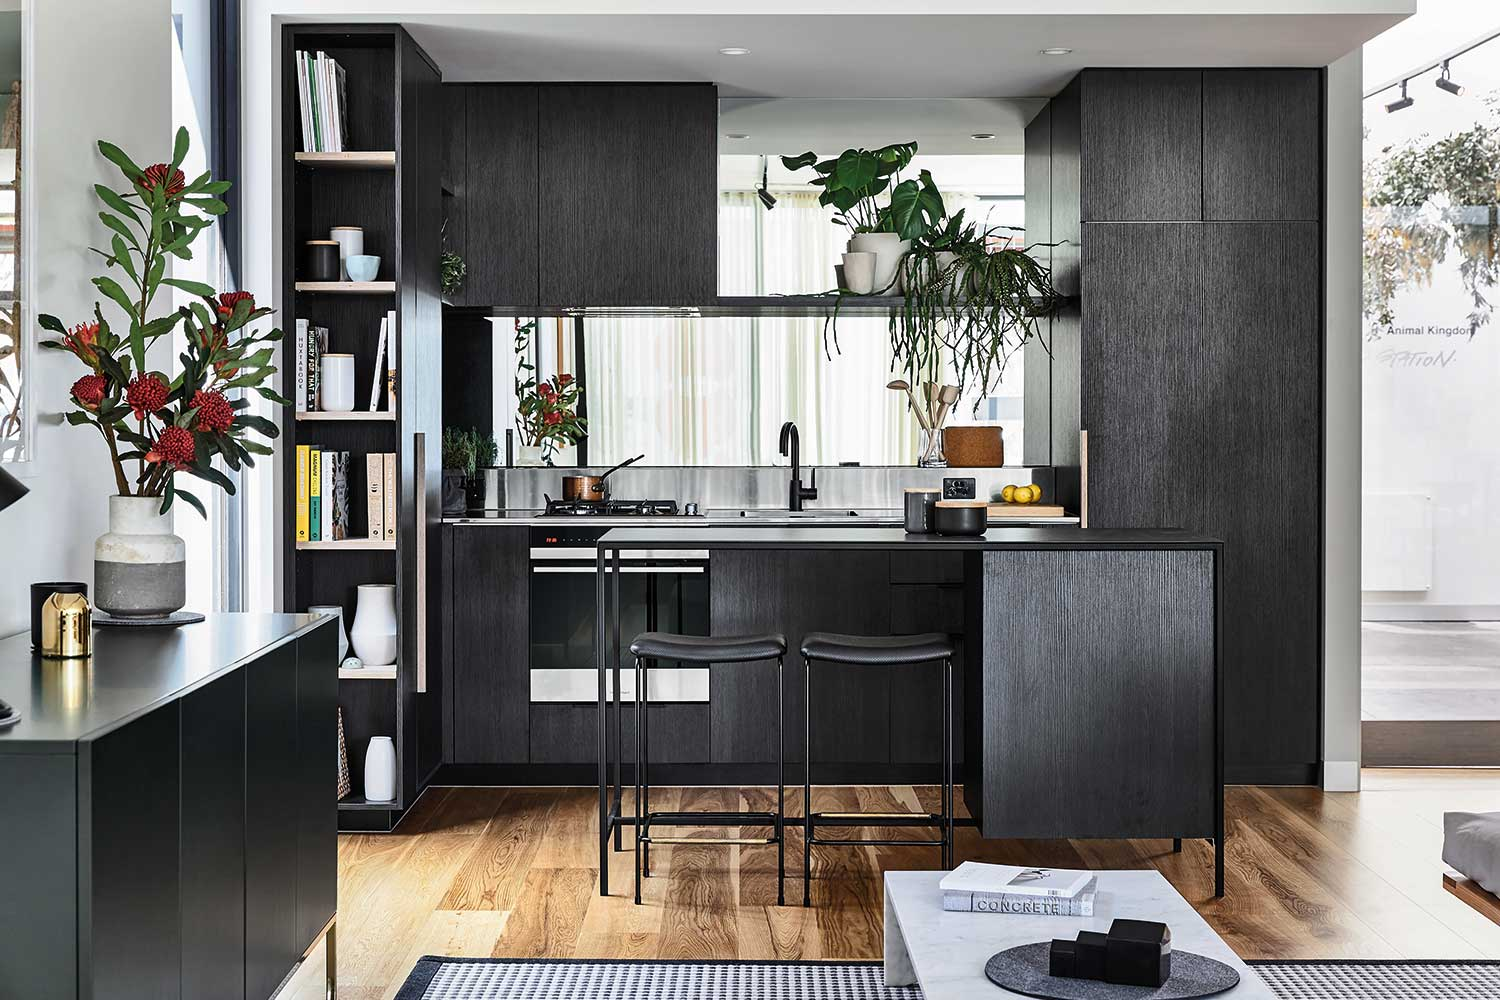 These Are The Biggest Kitchen Design Trends For 2019